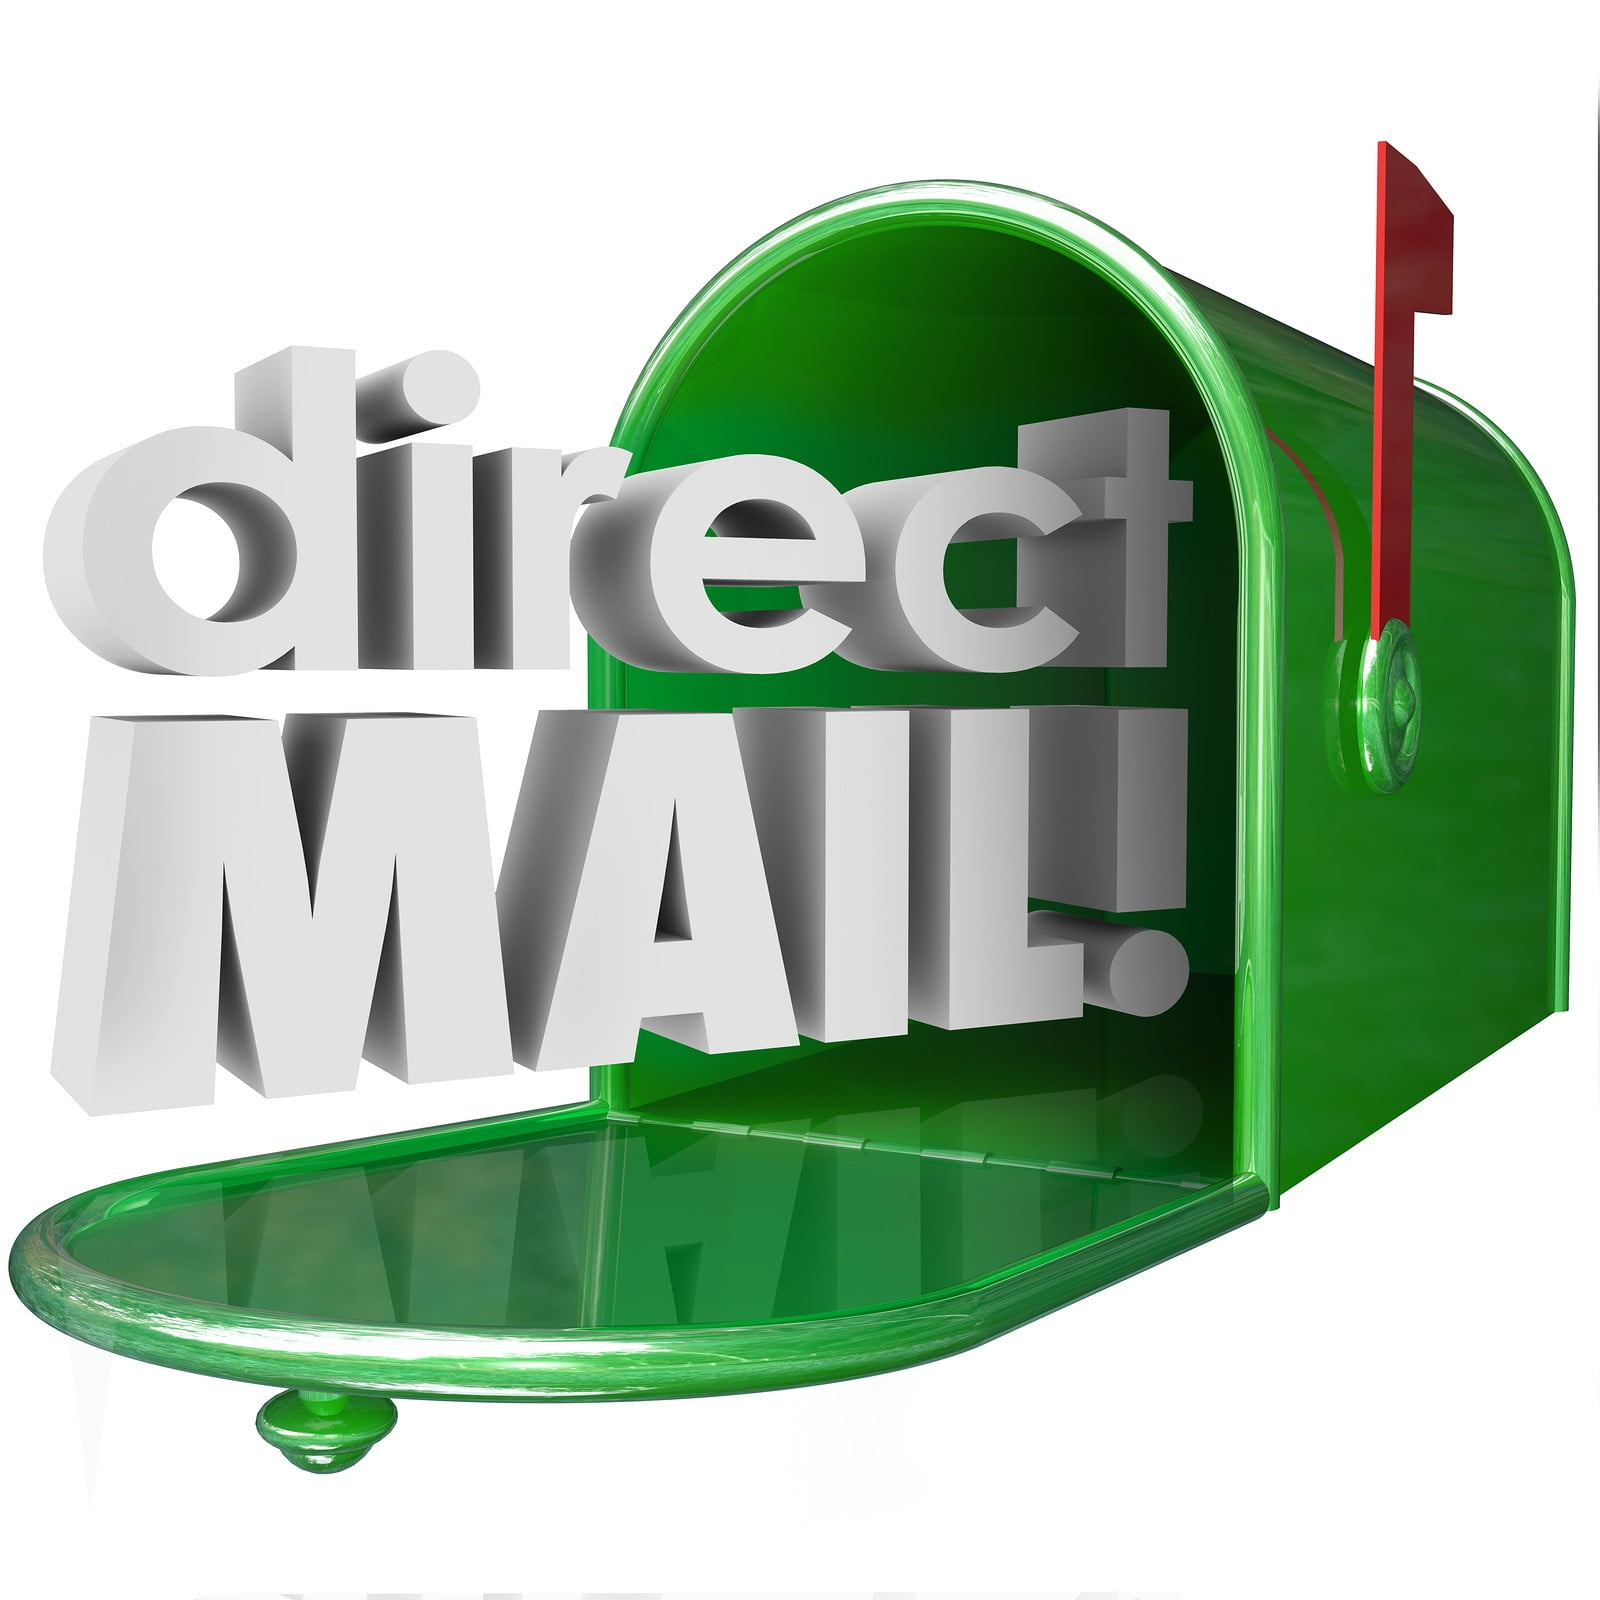 Is Direct Mail Marketing Dead? What is The Response Rate For Direct Mail Today?